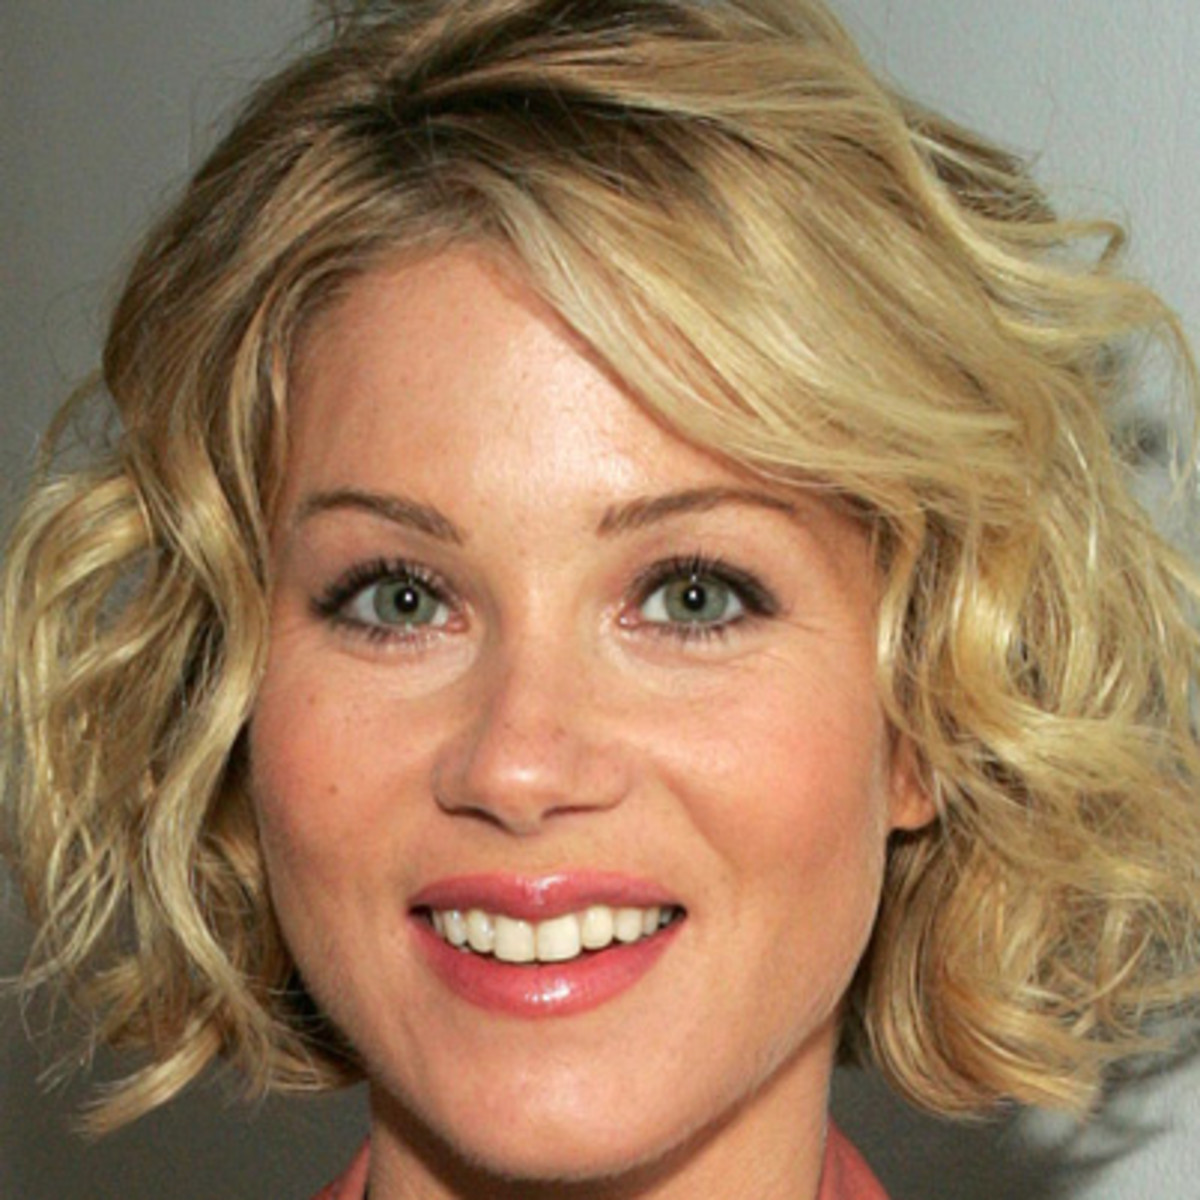 Christina Applegate born November 25, 1971 (age 46)